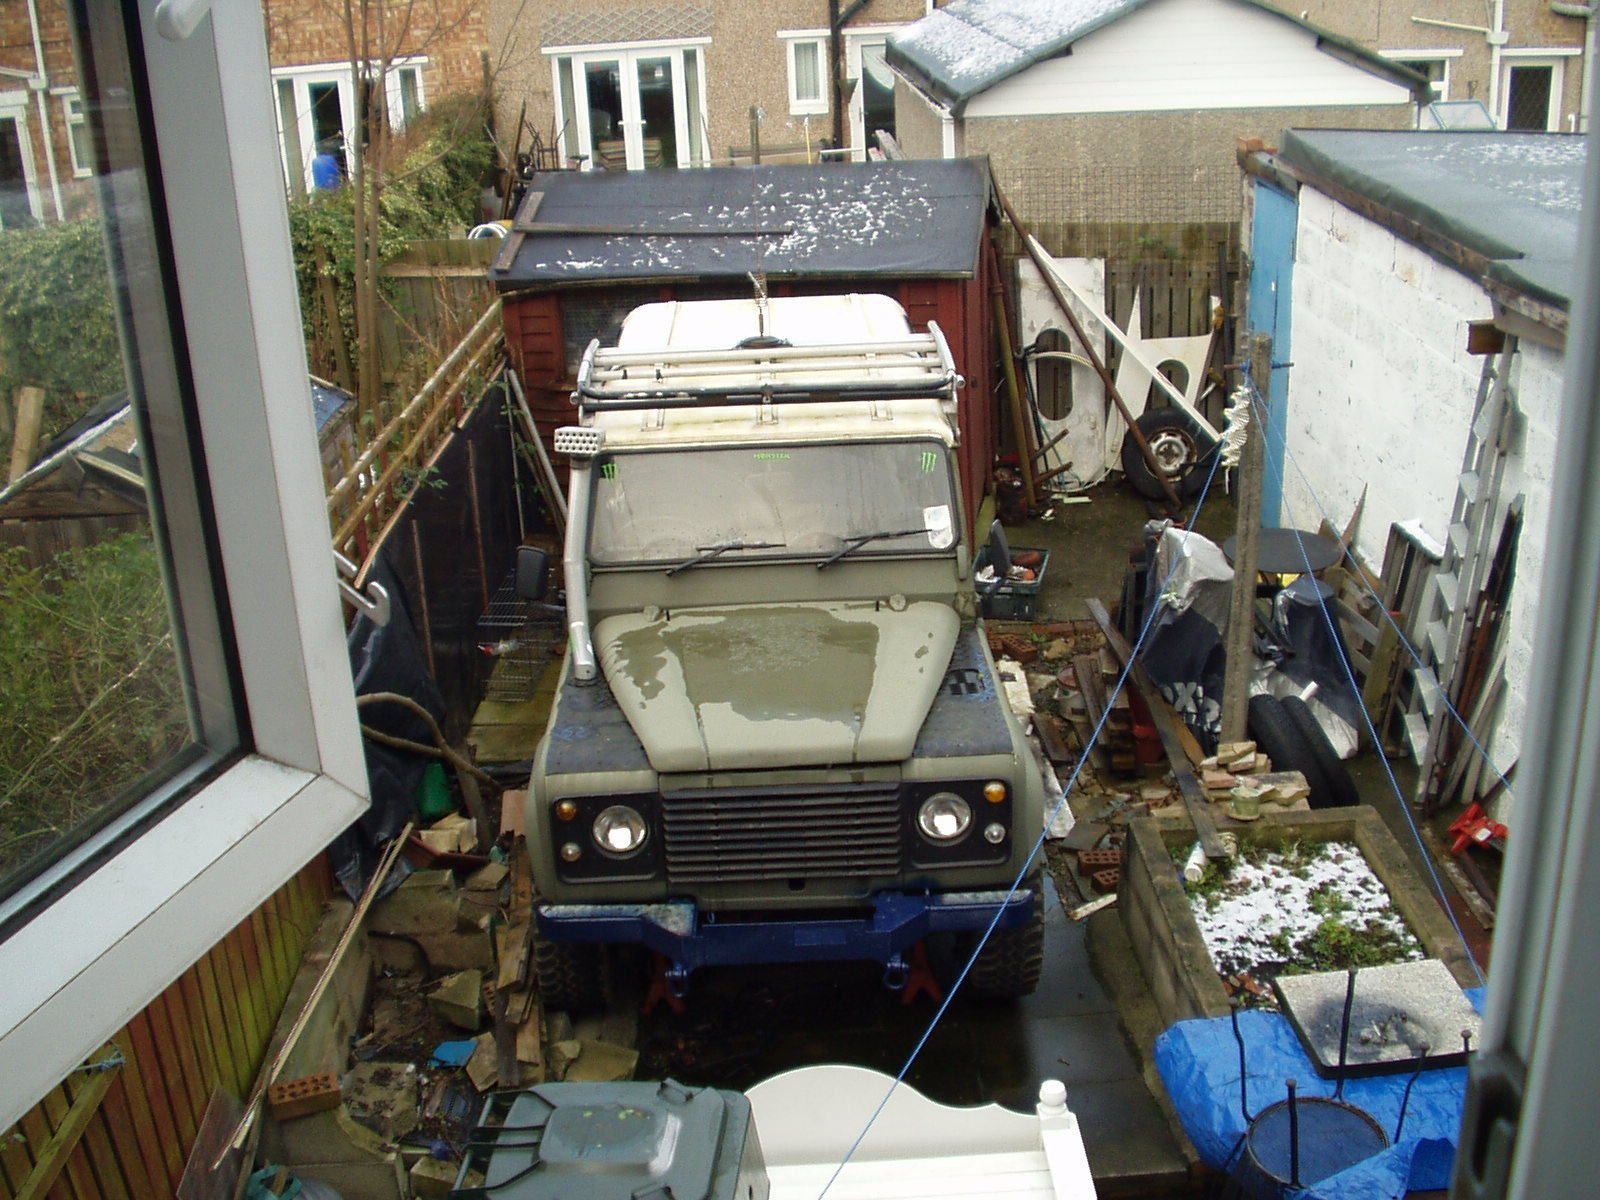 Land Rover Defender 200tdi Engine Discovery 300tdi Diagram Water Pump 1987 90 Great Spec New